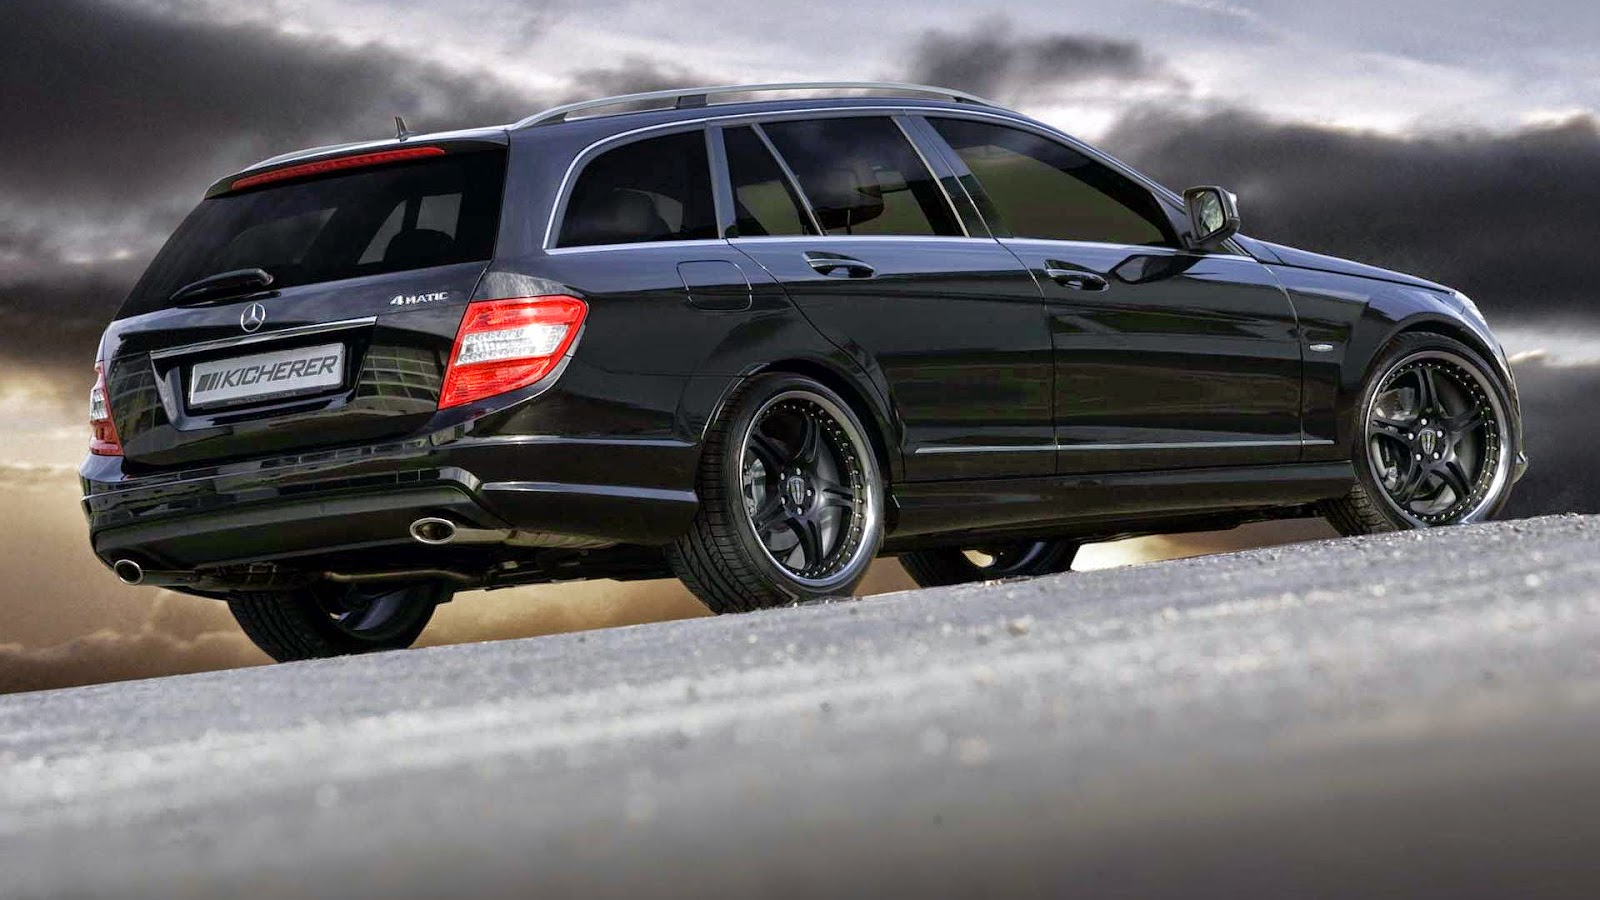 Mercedes-Benz Wallpapers 1920x1080 | BENZTUNING